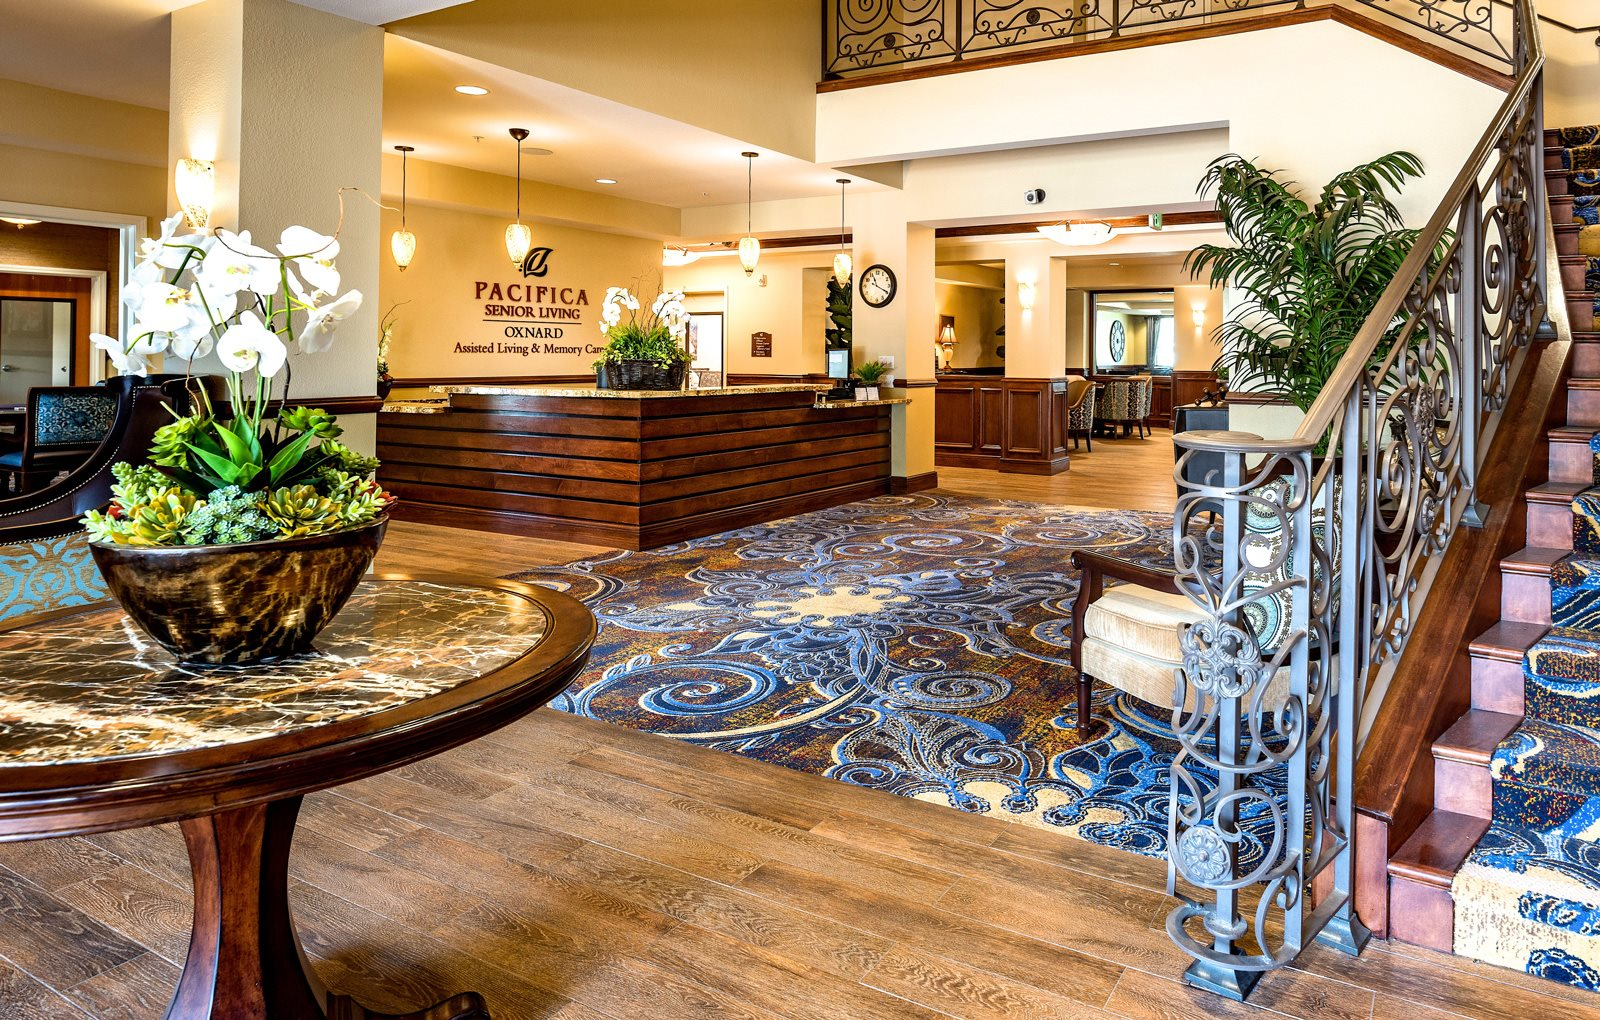 Inviting Reception Area at Pacifica Senior Living Oxnard, California